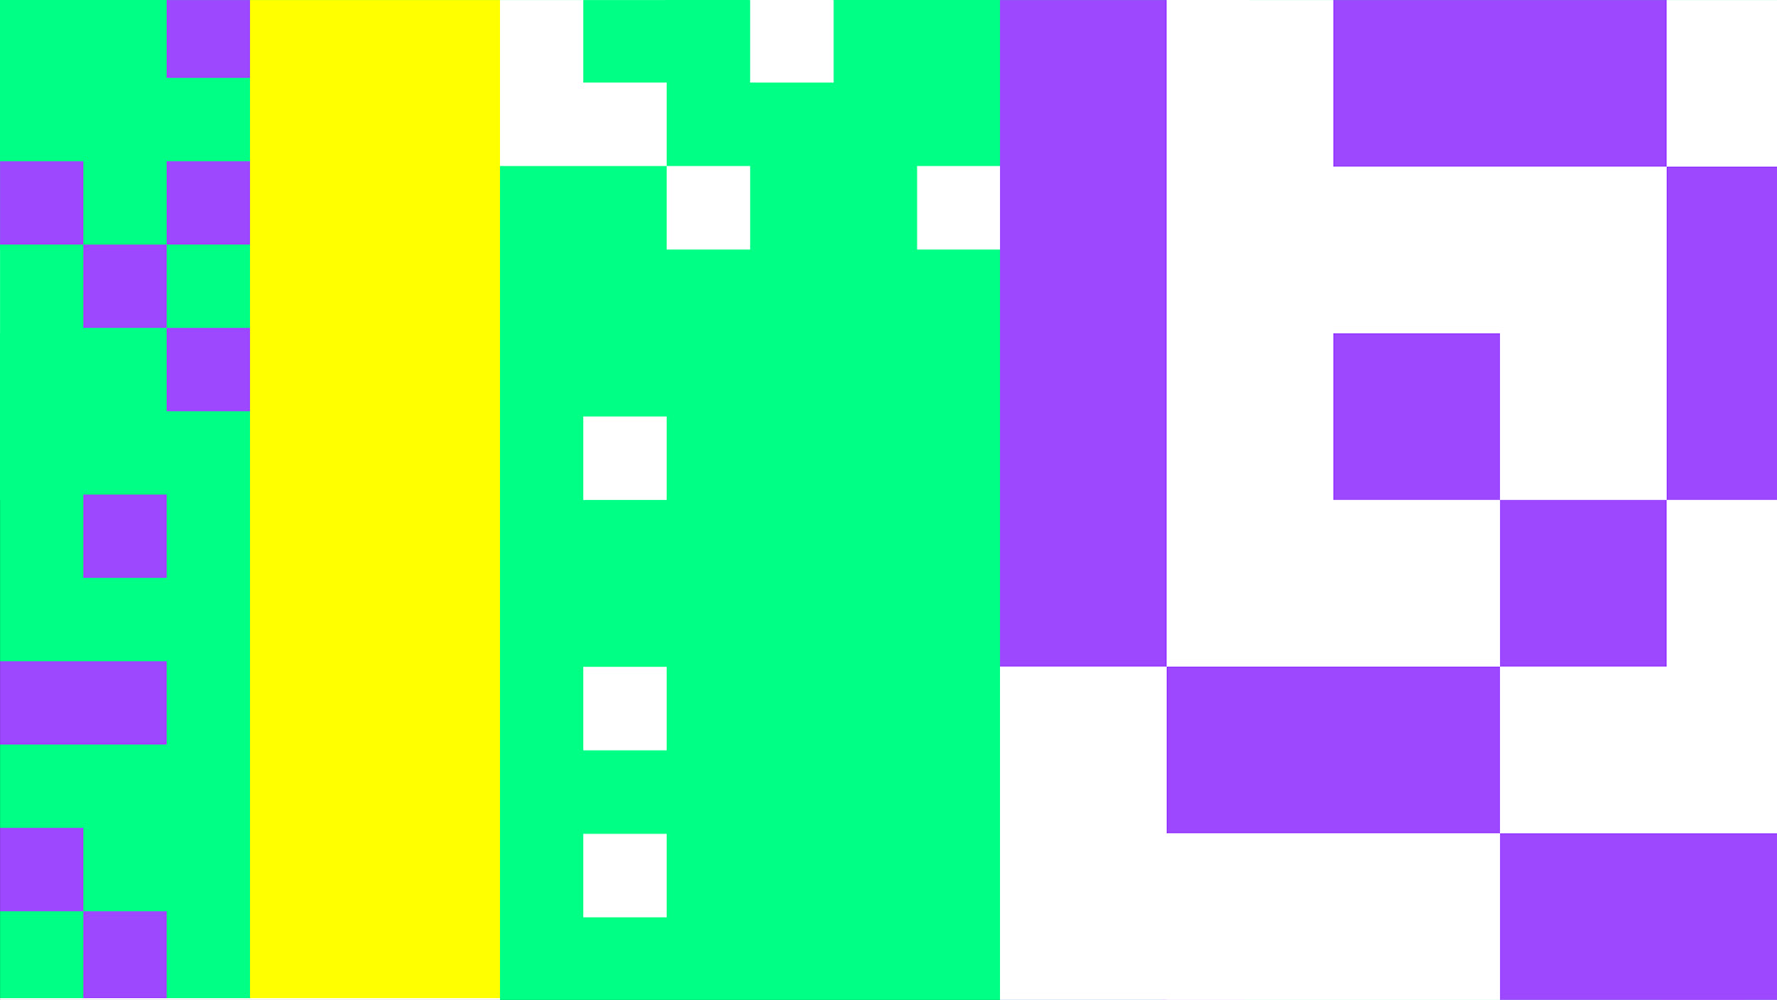 purple white and green pixels